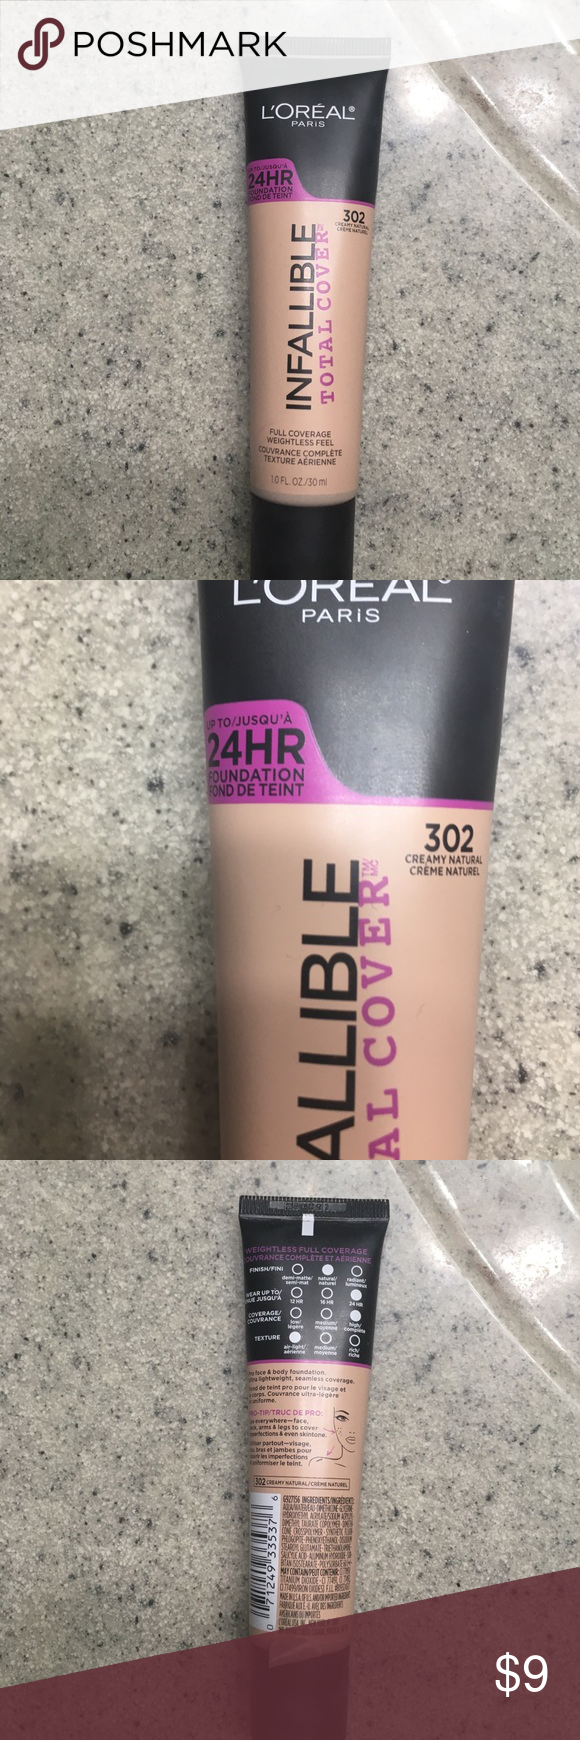 L'Oréal Infallible Total Coverage Foundation 302 Creamy